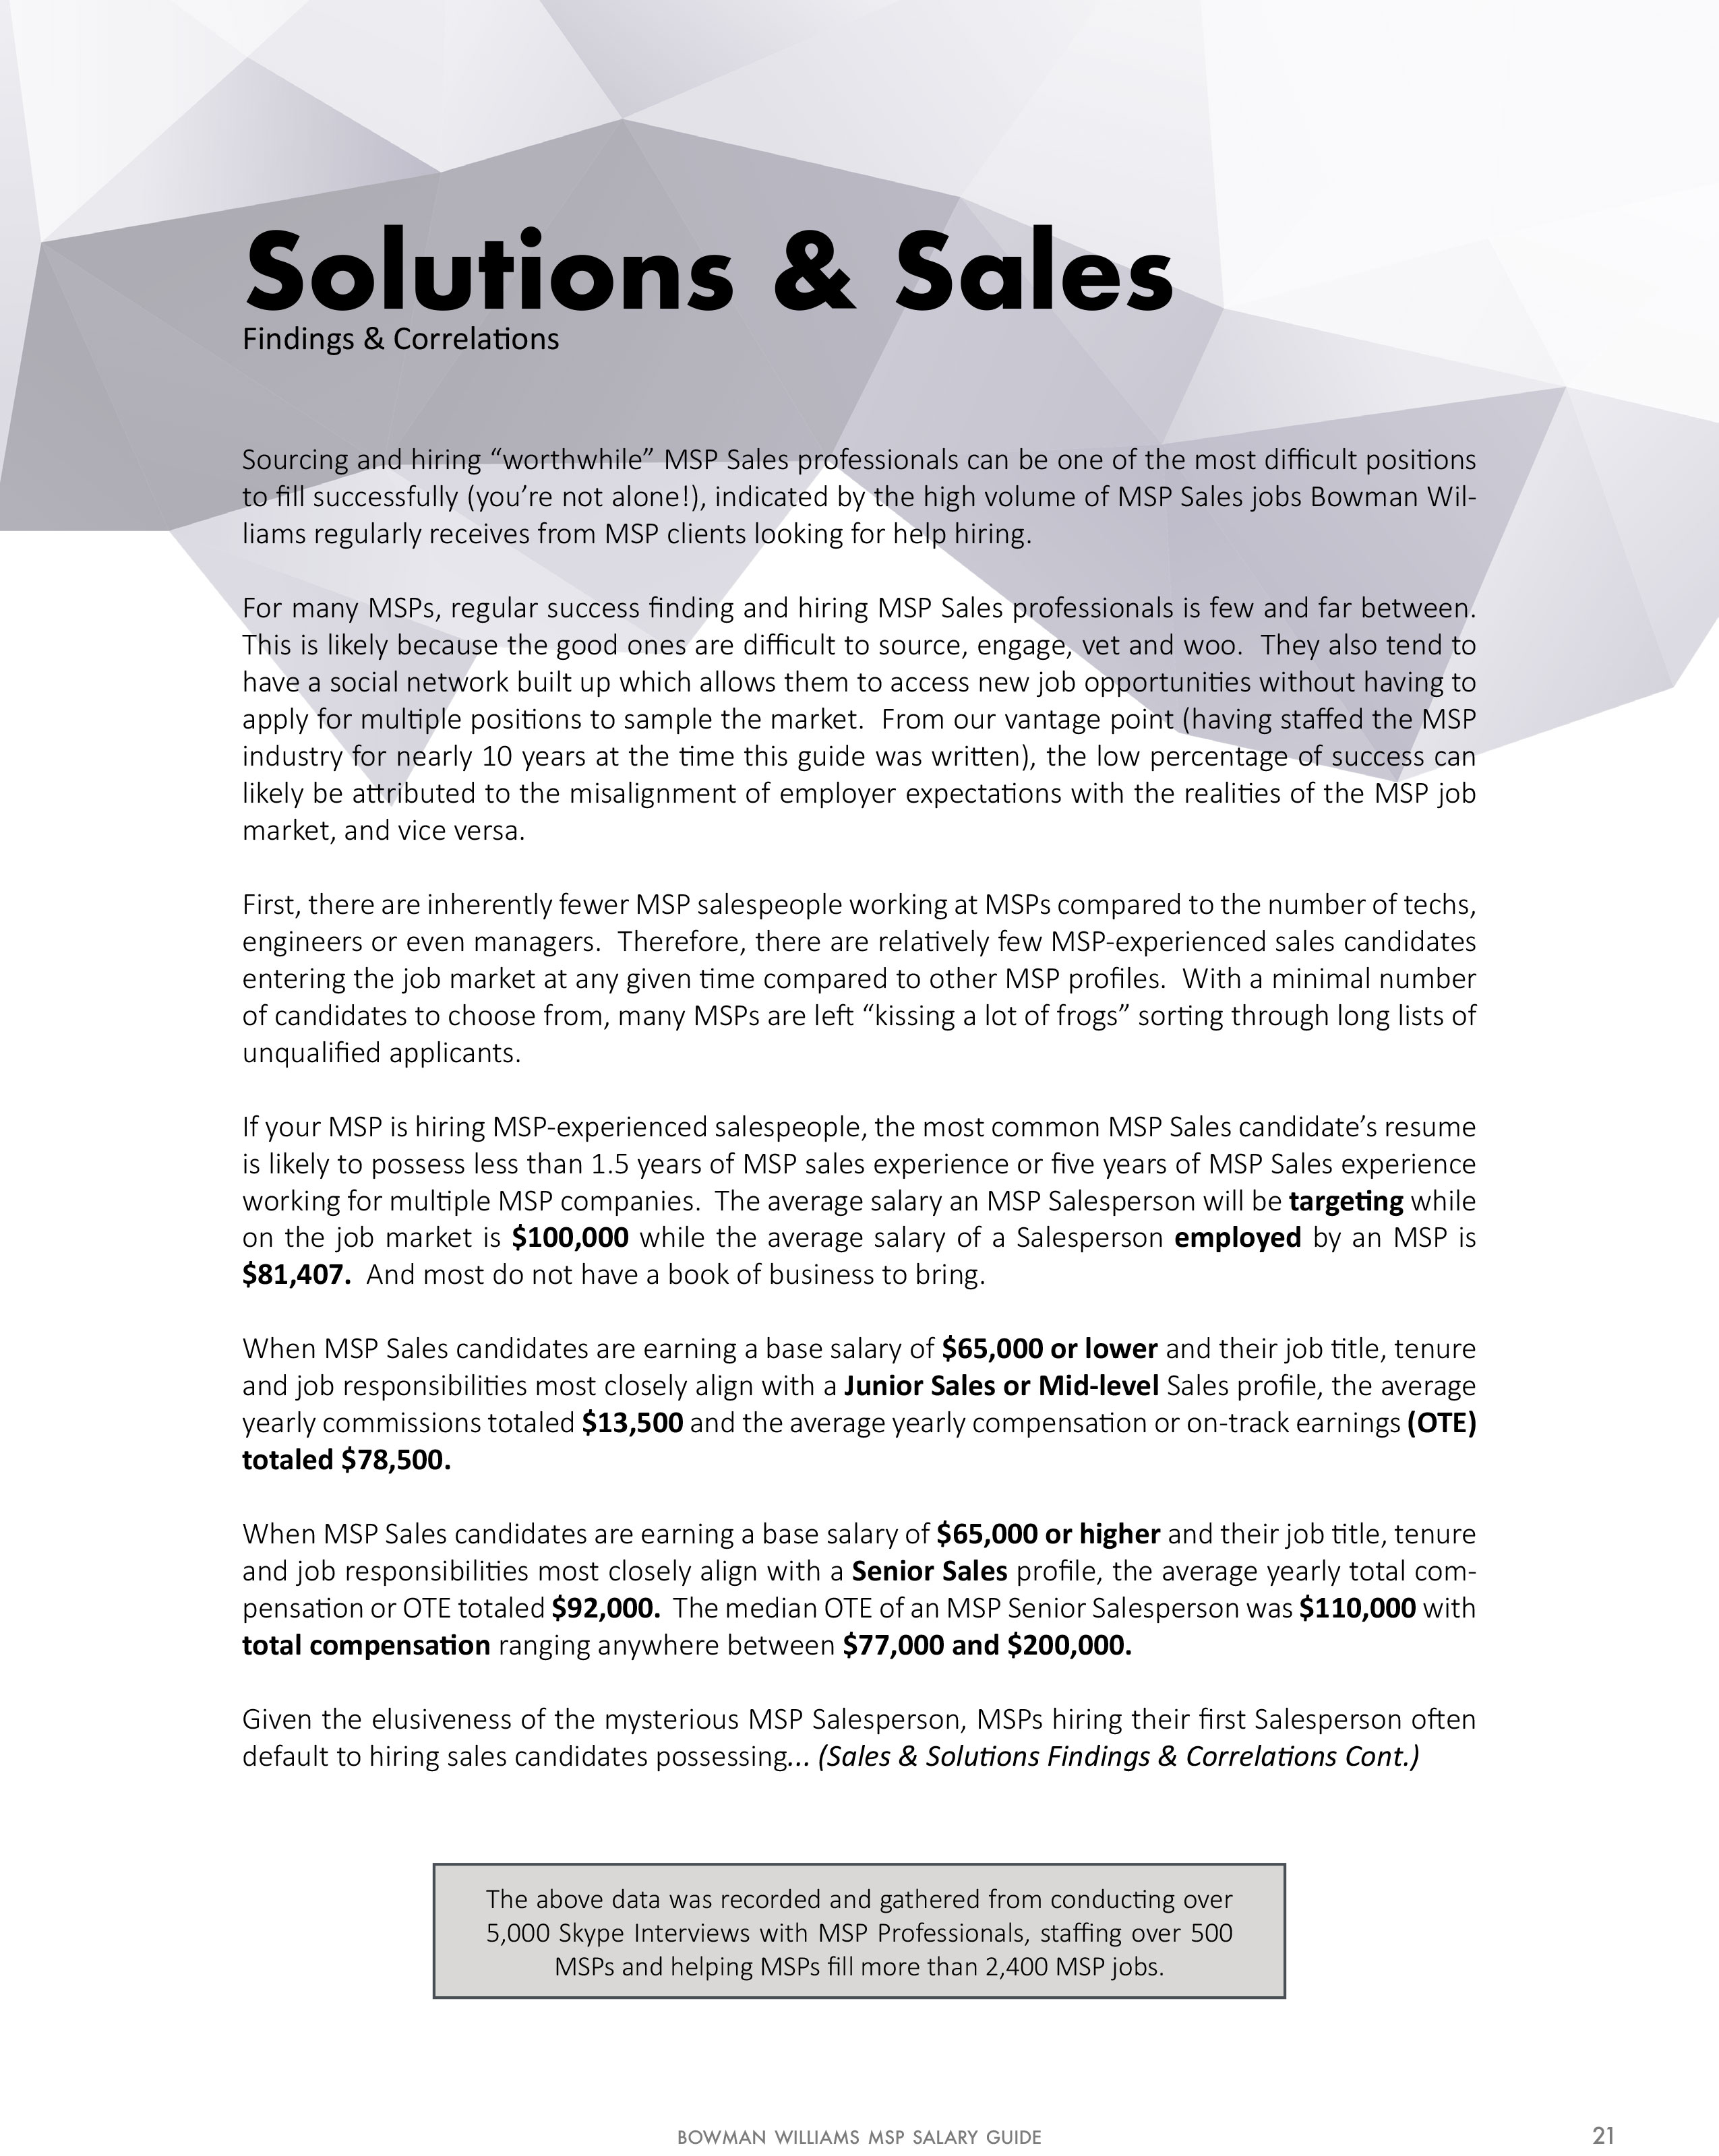 solutions-sales-3